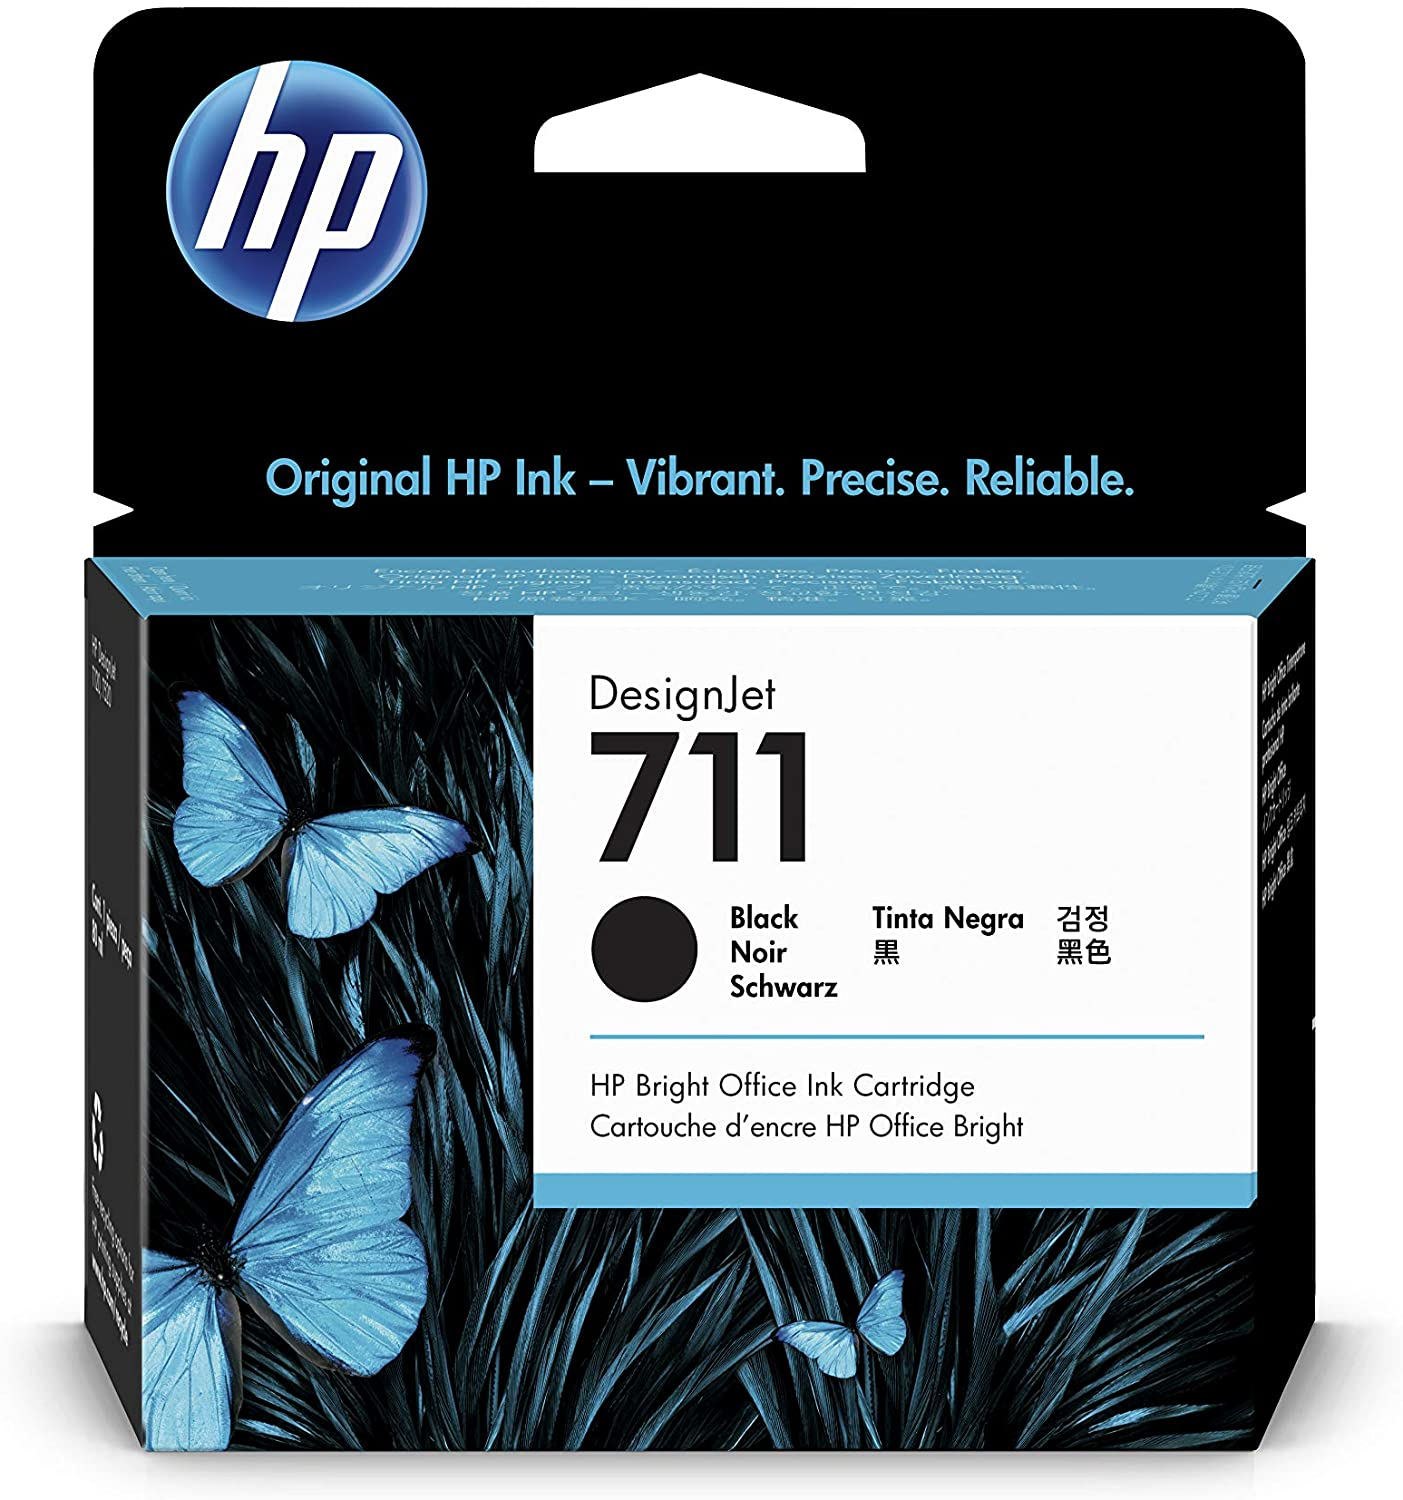 HP 711 80-ml Black Designjet Ink Cartridge (CZ133A) for HP DesignJet T120 24-in Printer HP DesignJet T520 24-in Printer HP DesignJet T520 36-in PrinterHP DesignJet printheads help you respond quickly by providing quality speed and easy hassle-free printing